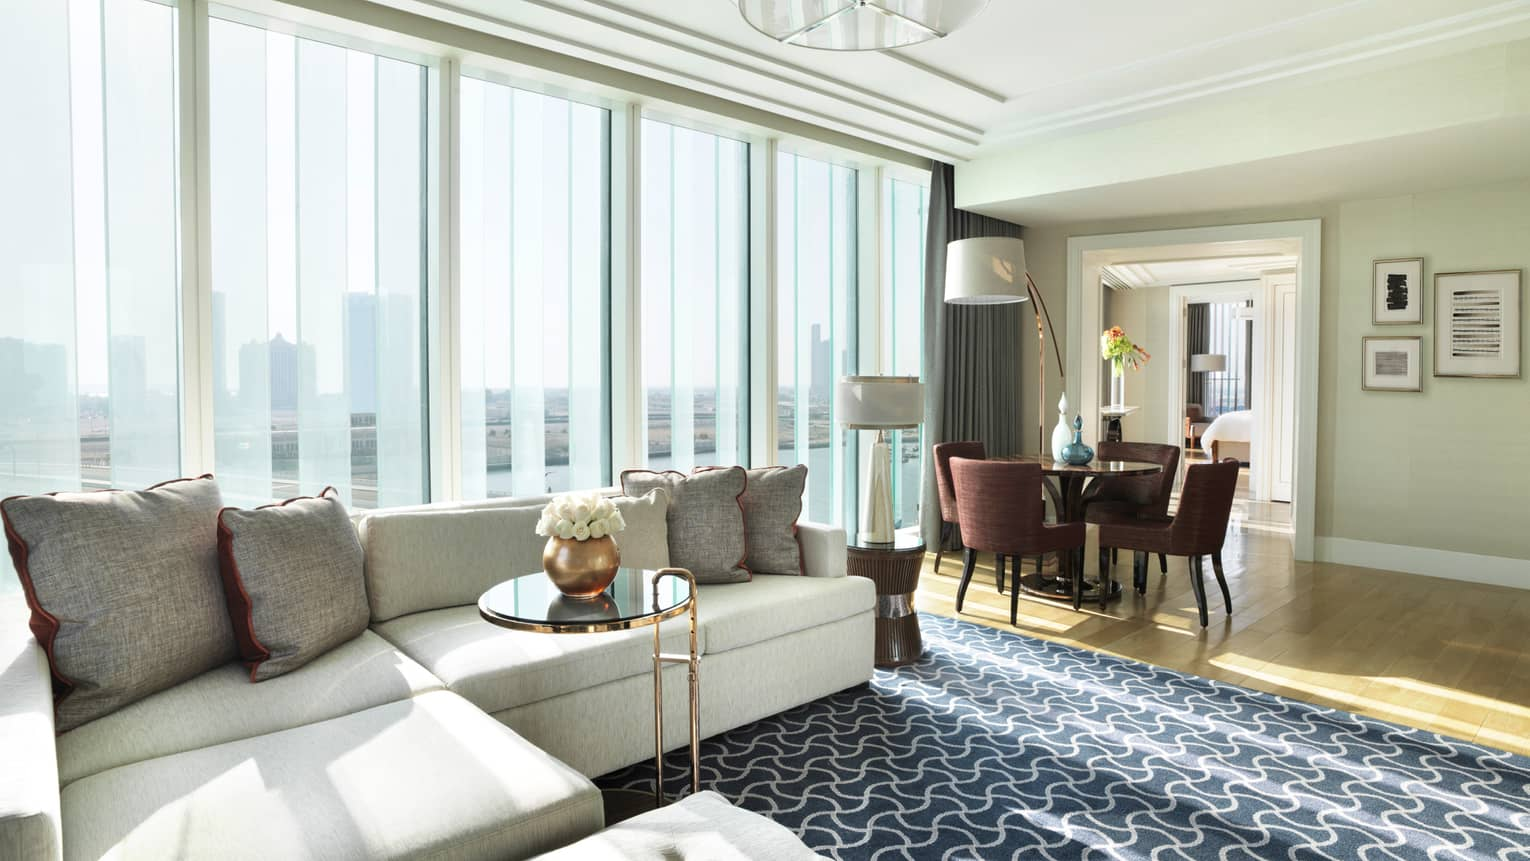 living room restaurant abu dhabi ideas with dark brown furniture hotel luxury four seasons al maryah island deluxe executive suite large l shaped white sofa against